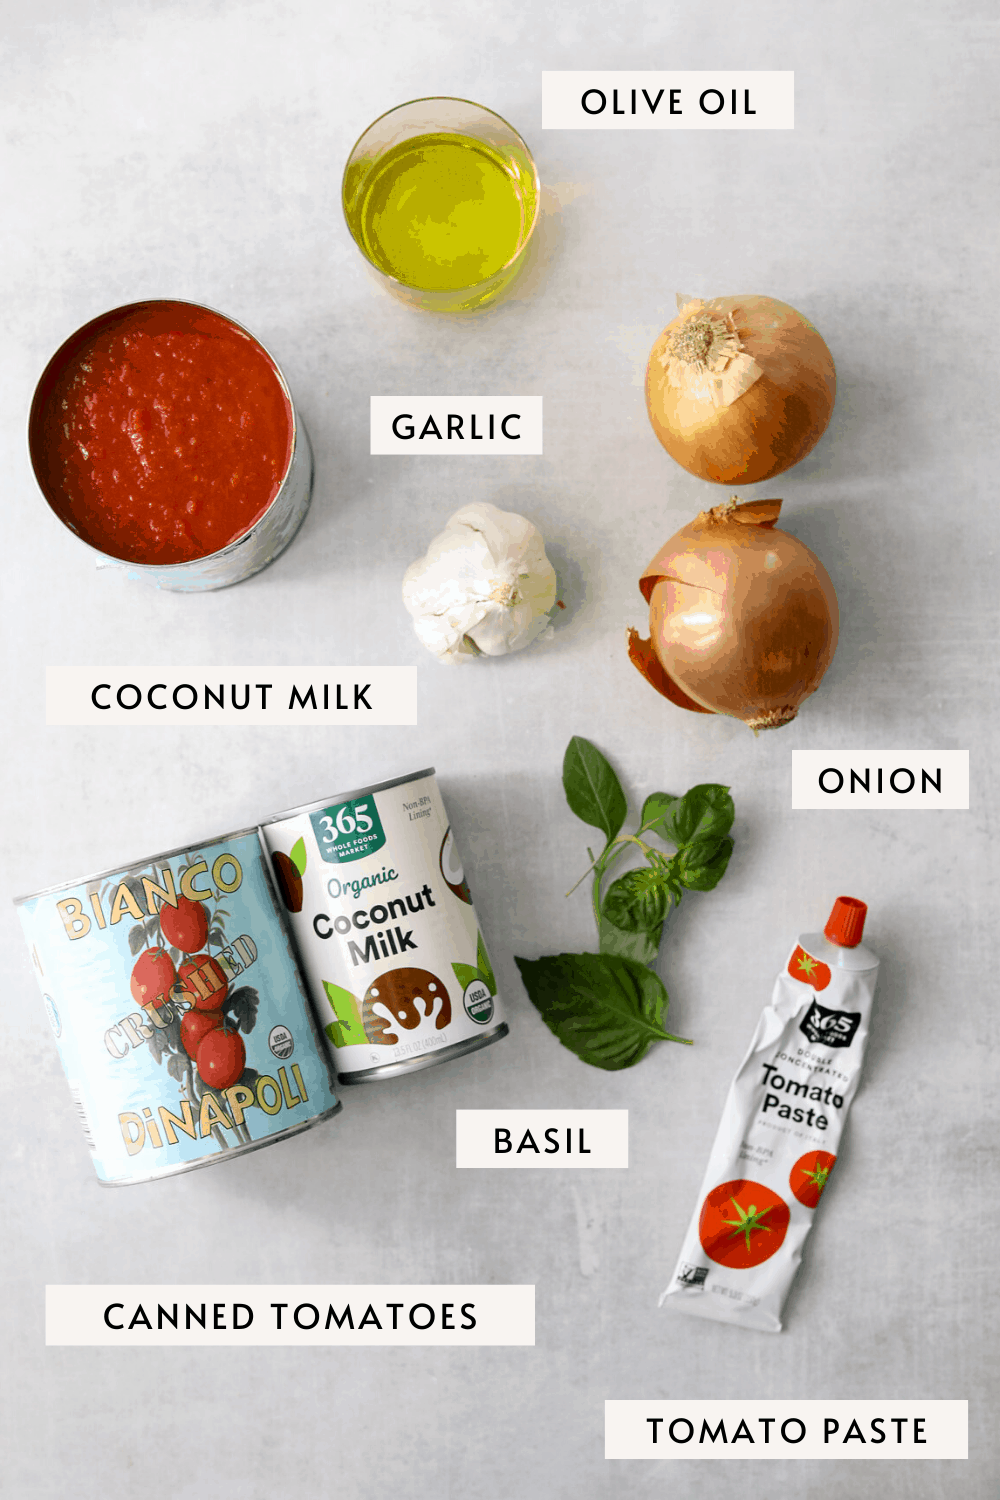 recipe ingredients on a blue background; canned tomatoes, olive oil, onion, garlic, basil, coconut milk